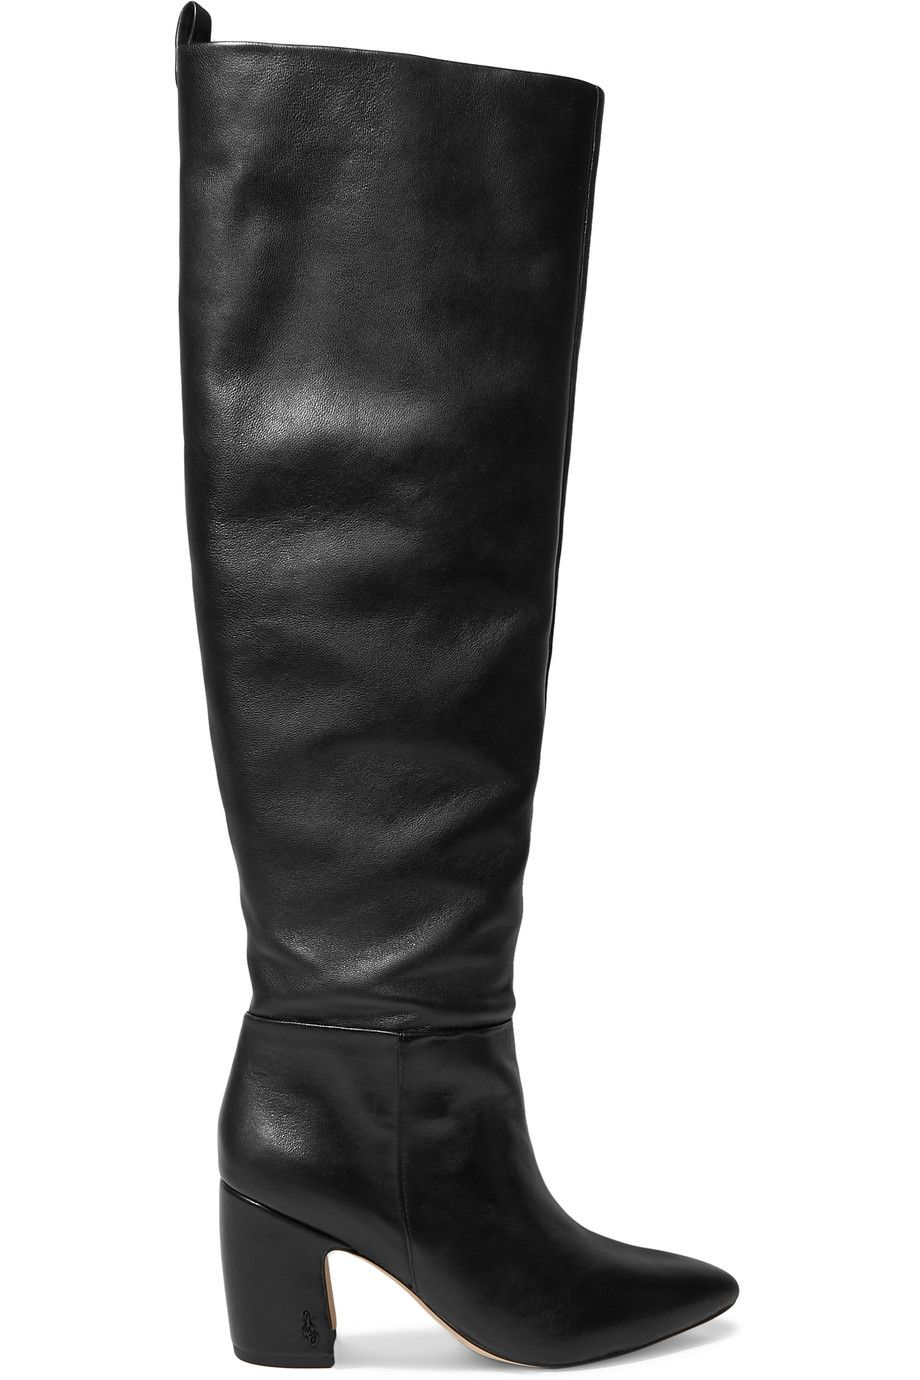 15 Best Knee High Boots for Fall - Knee